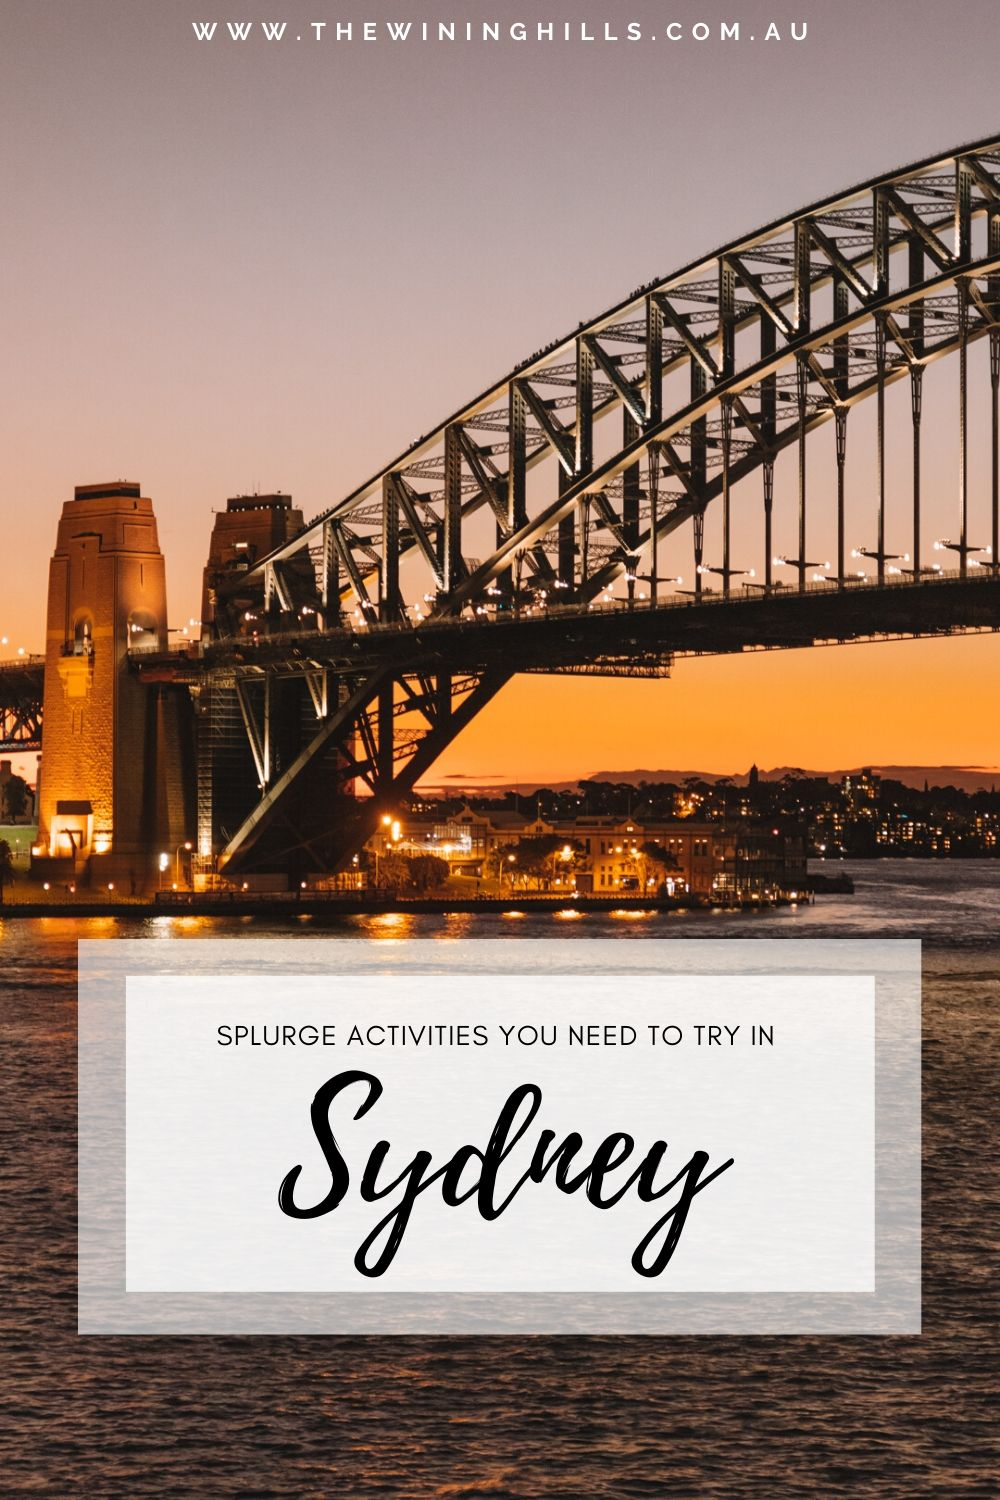 Once in a Lifetime Experiences you MUST do in Sydney! Take a helicopter over the Harbour or enjoy cruising past the Opera House on a private yacht! These total splurge activities you must try once in Sydney! #australia #sydneytravel